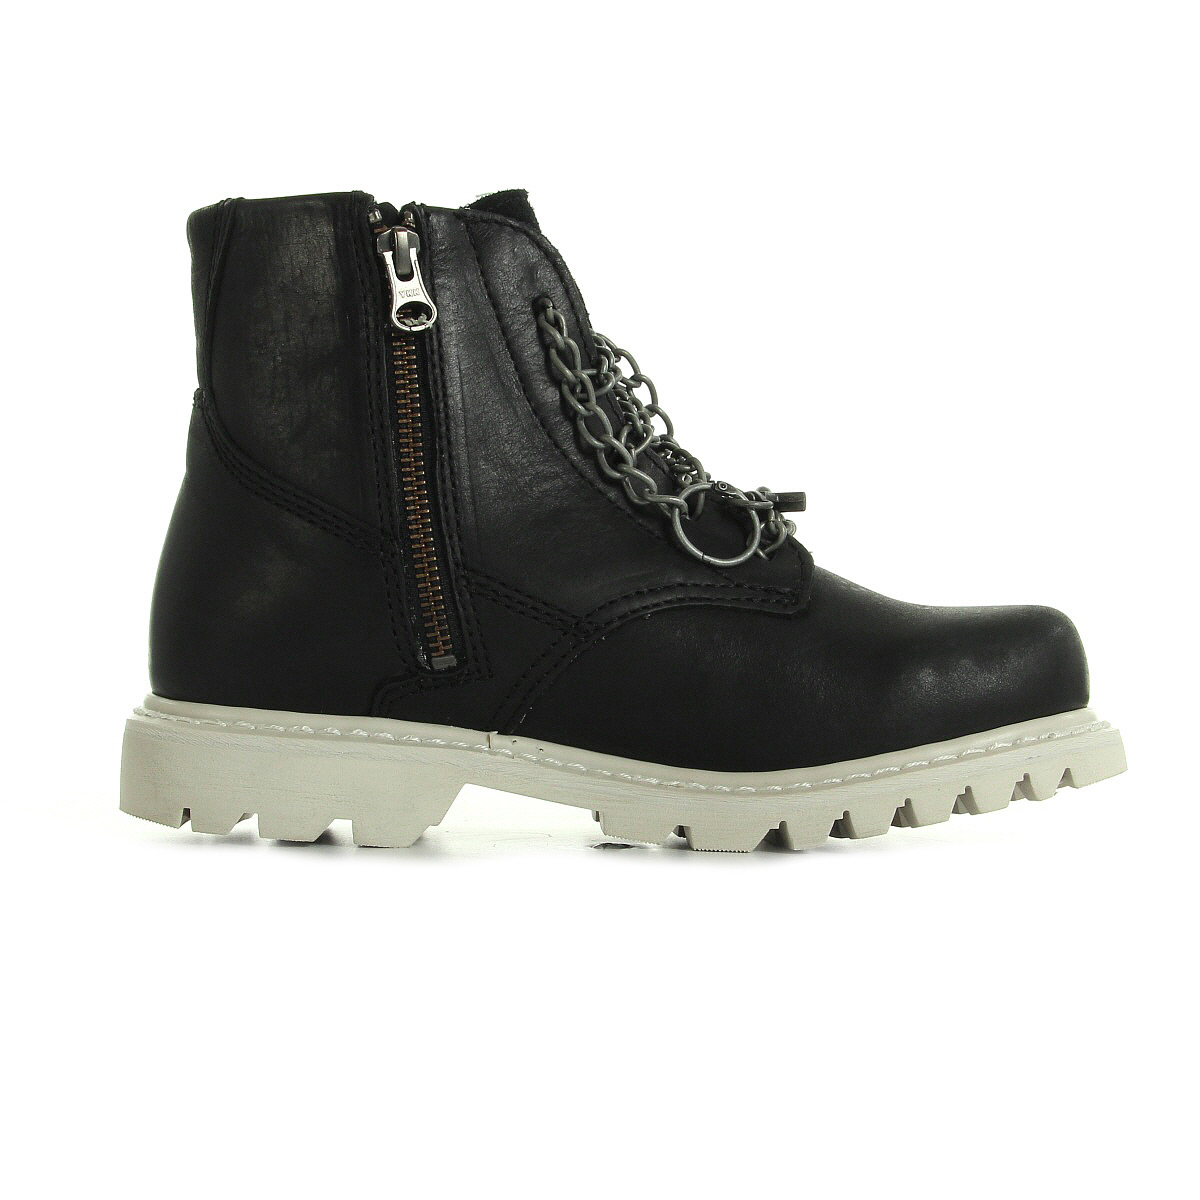 chaussures boots caterpillar femme grid adorn taille noir noire cuir lacets ebay. Black Bedroom Furniture Sets. Home Design Ideas